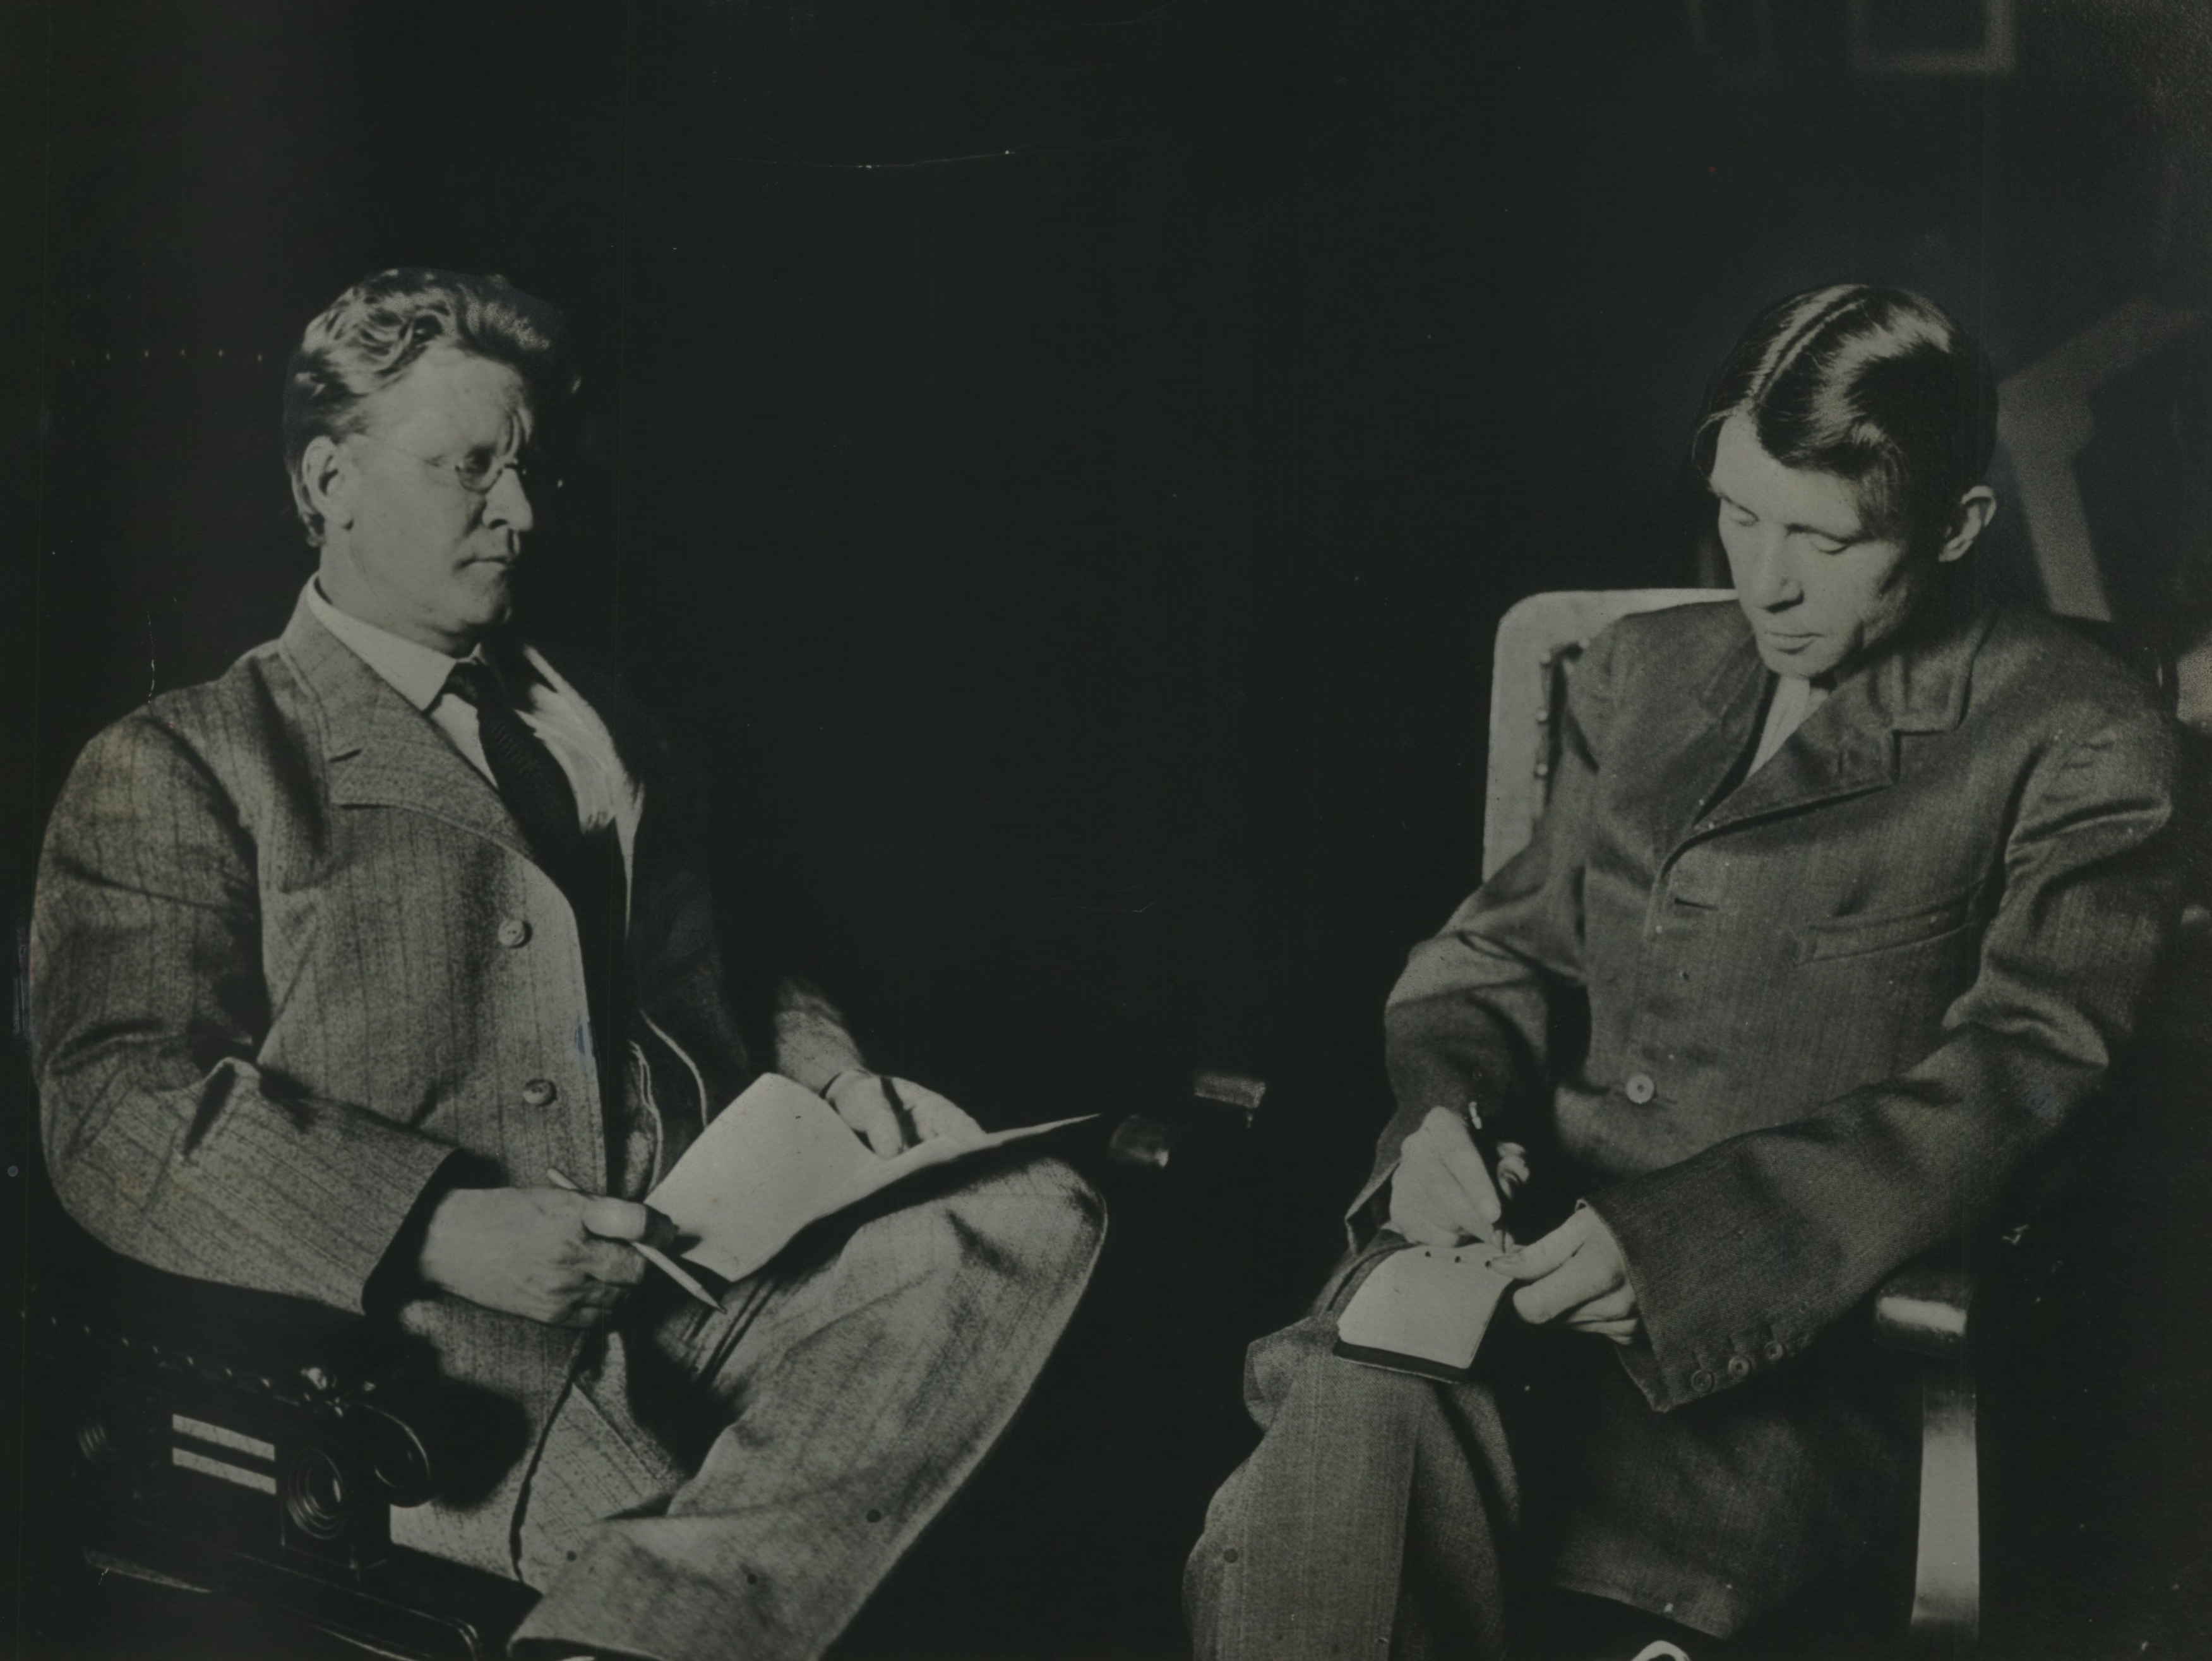 In 1910, Milwaukee's first Socialist Mayor, Emil Seidel (left), was interviewed by a young reporter named Carl Sandburg. Sandburg would soon join the mayor's staff.